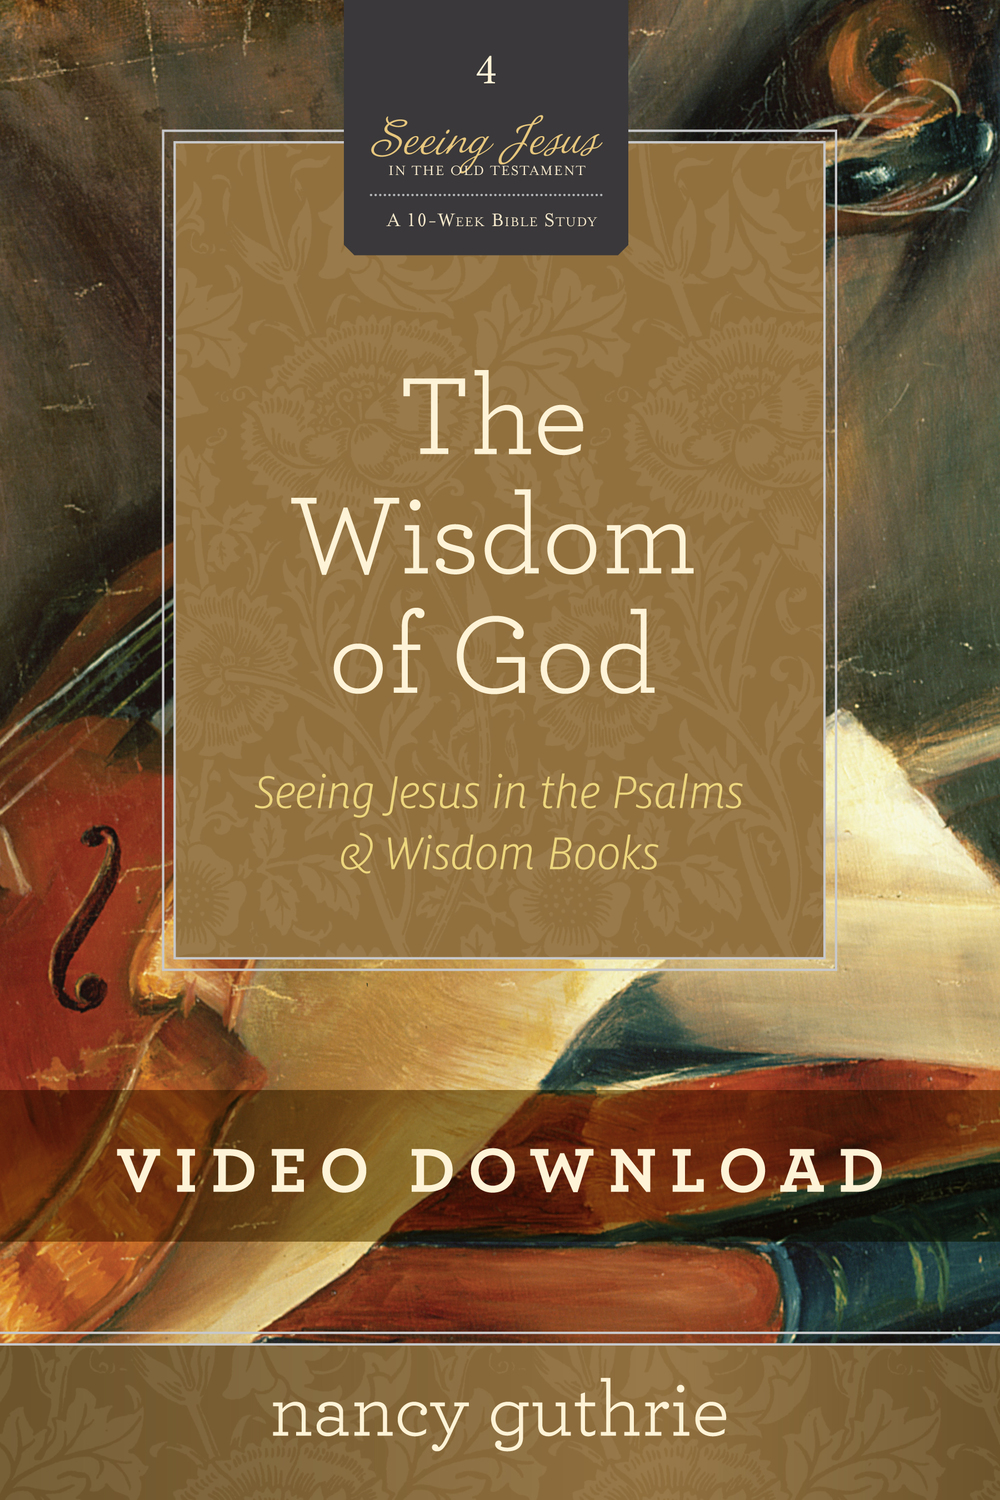 The Wisdom of God Video Session 6 Download